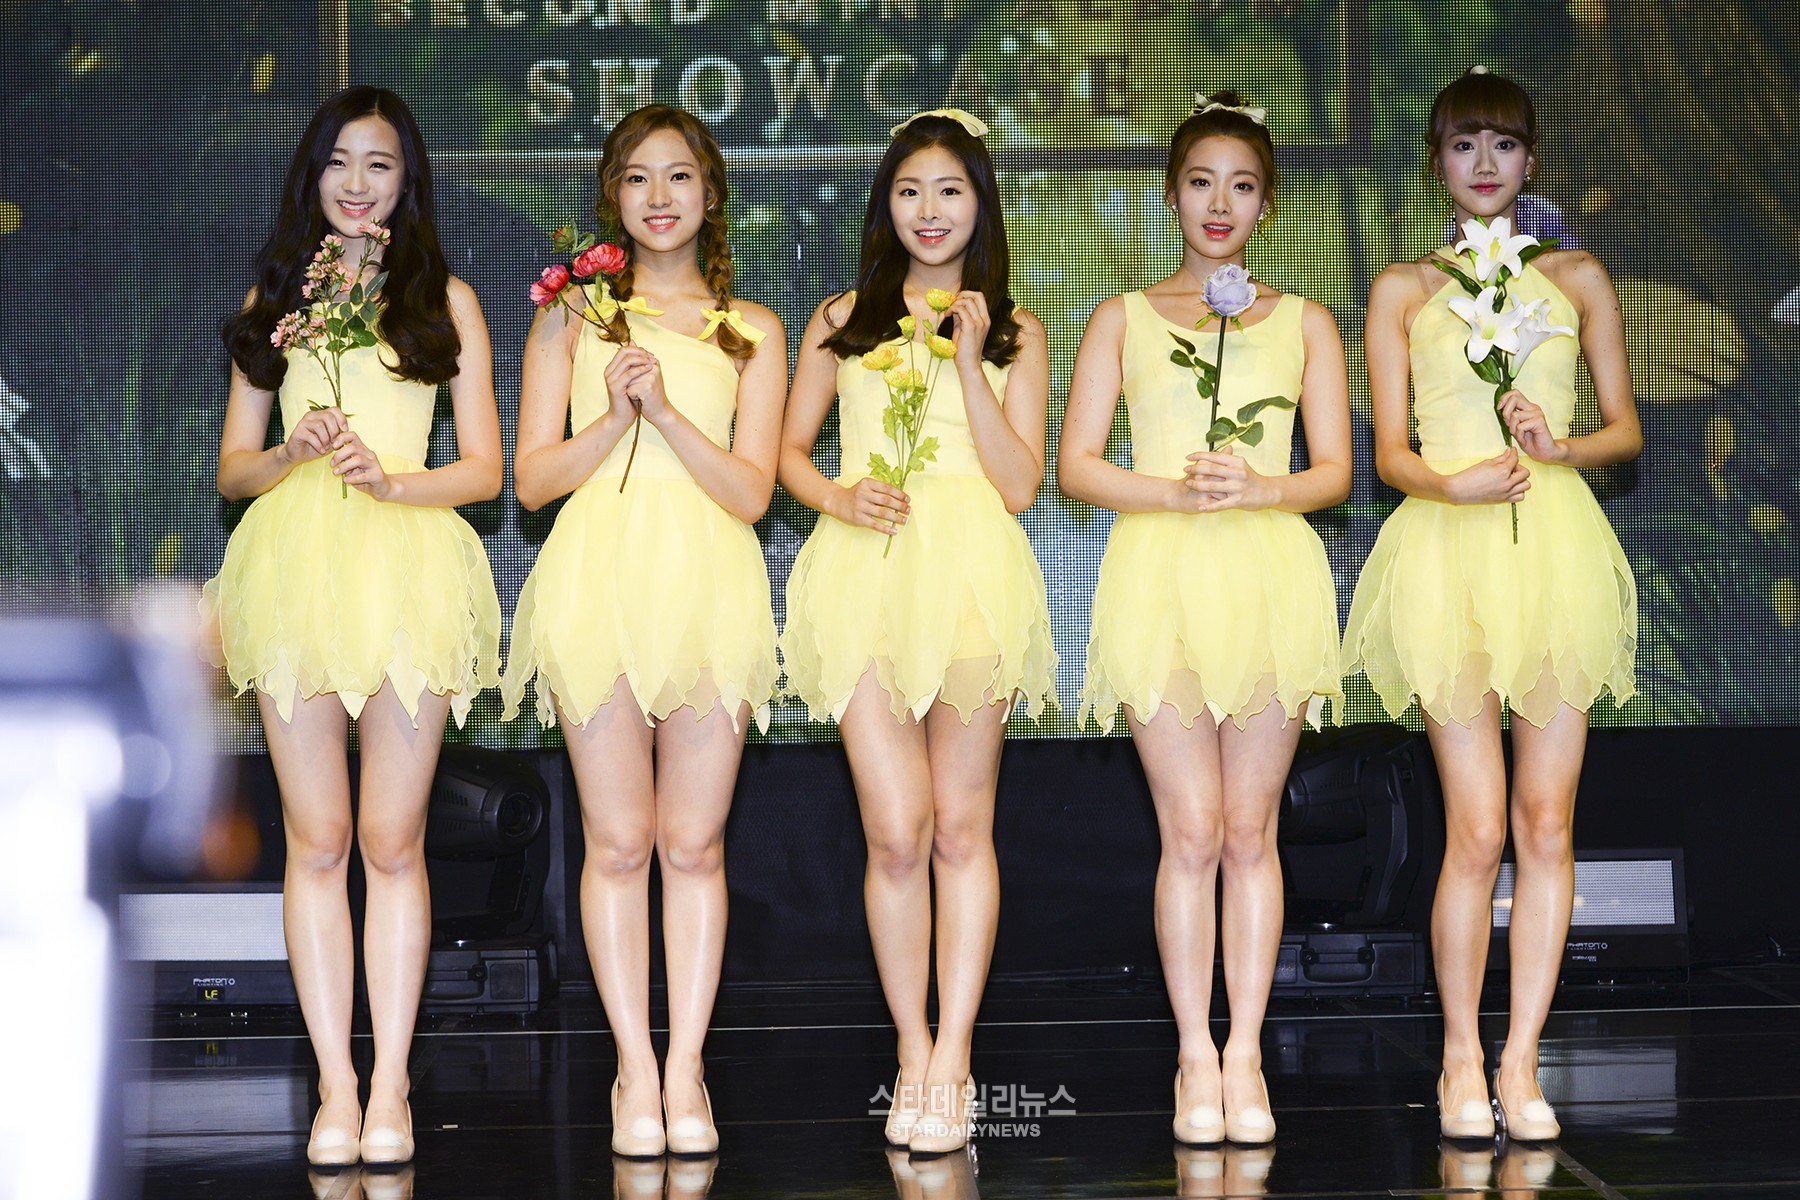 April Talks Favorite Outfit Concepts And What They Would Love toCheck out Next